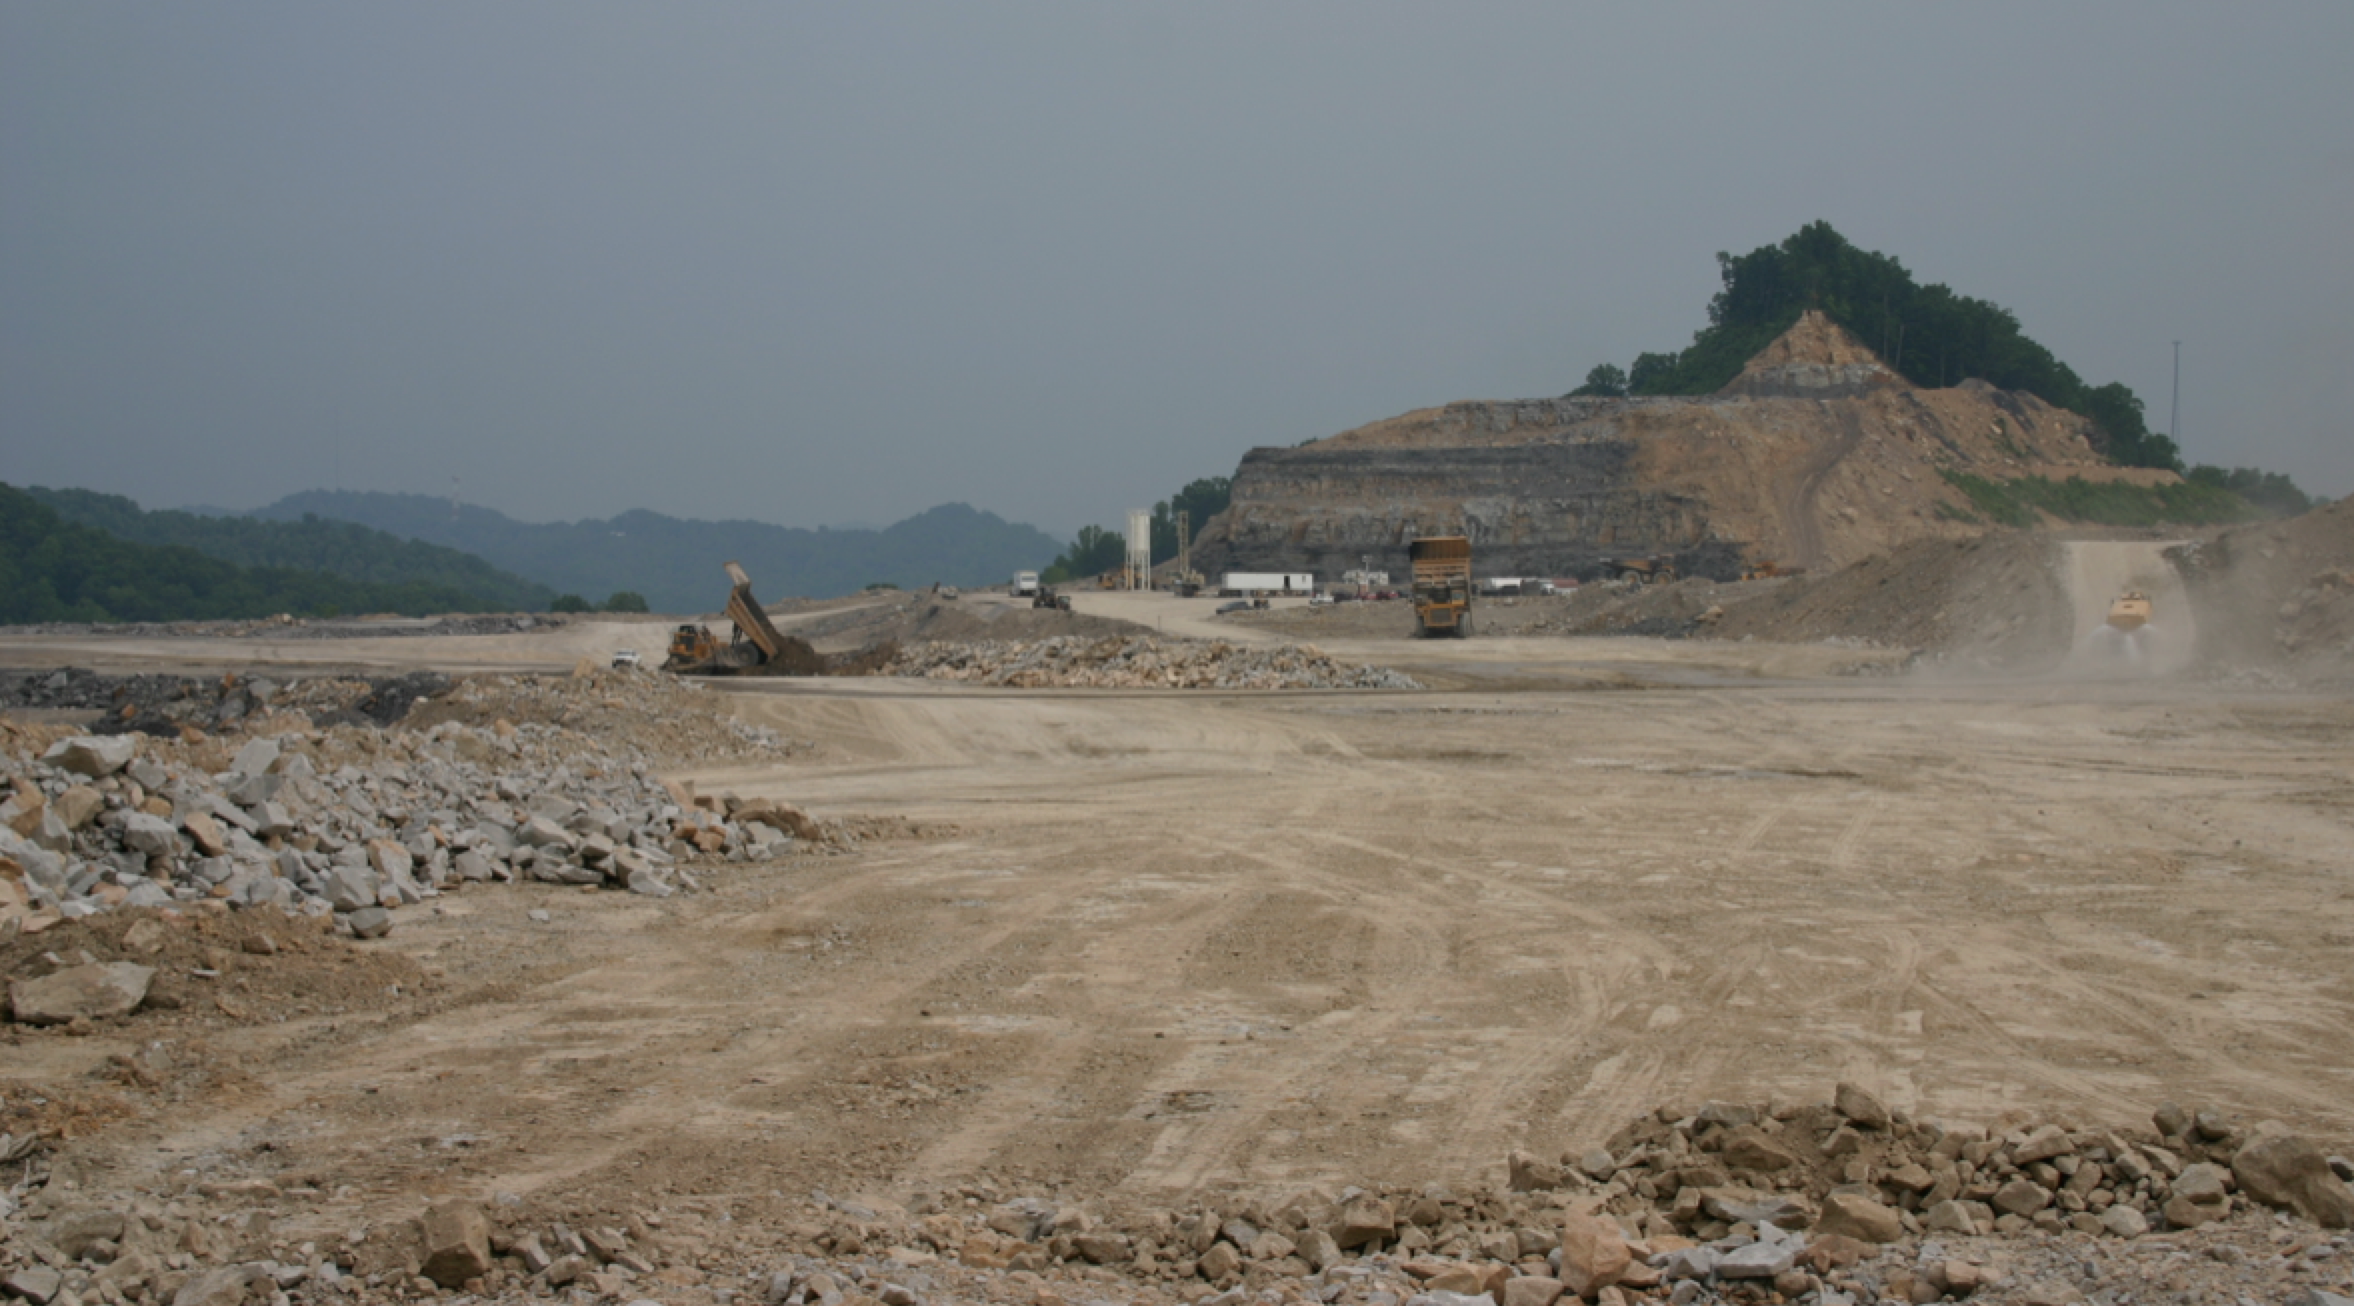 What's left of a mountain near River's house. To find out more about mountaintop removal, visit I Love Mountains.